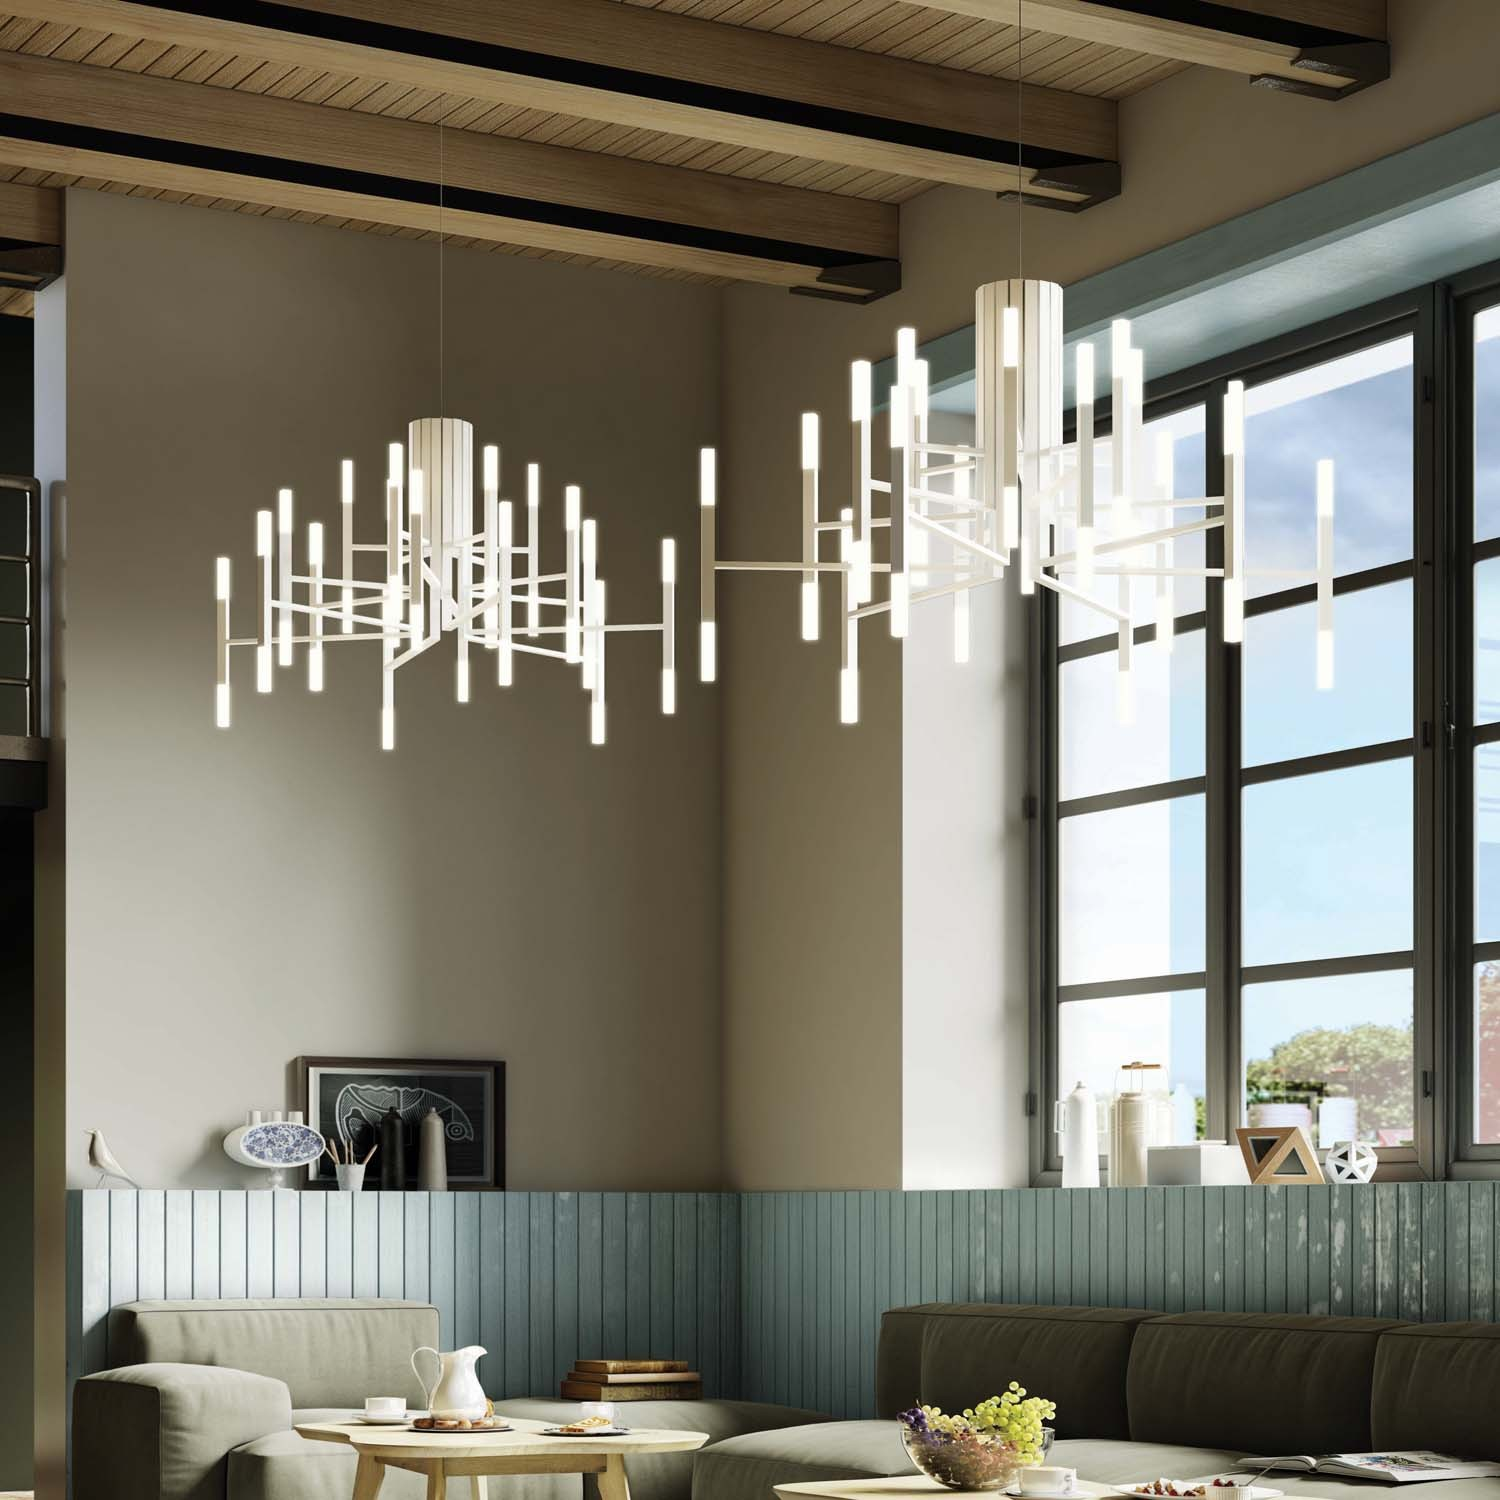 Home Interior Lighting: Chandeliers In Unexpected Places